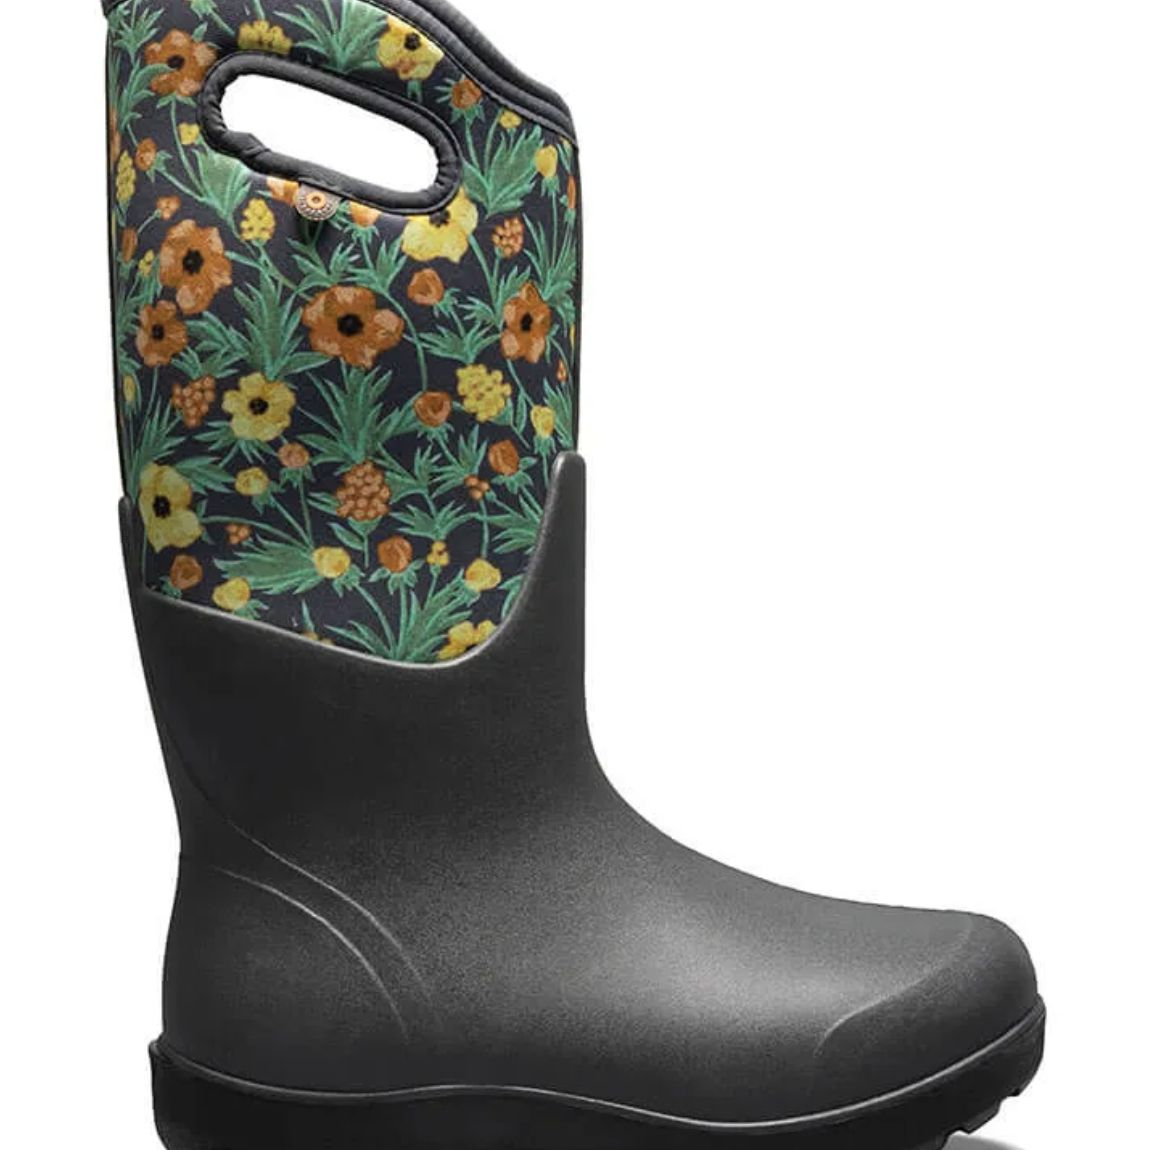 Bogs Neo Classic Tall Vine Floral